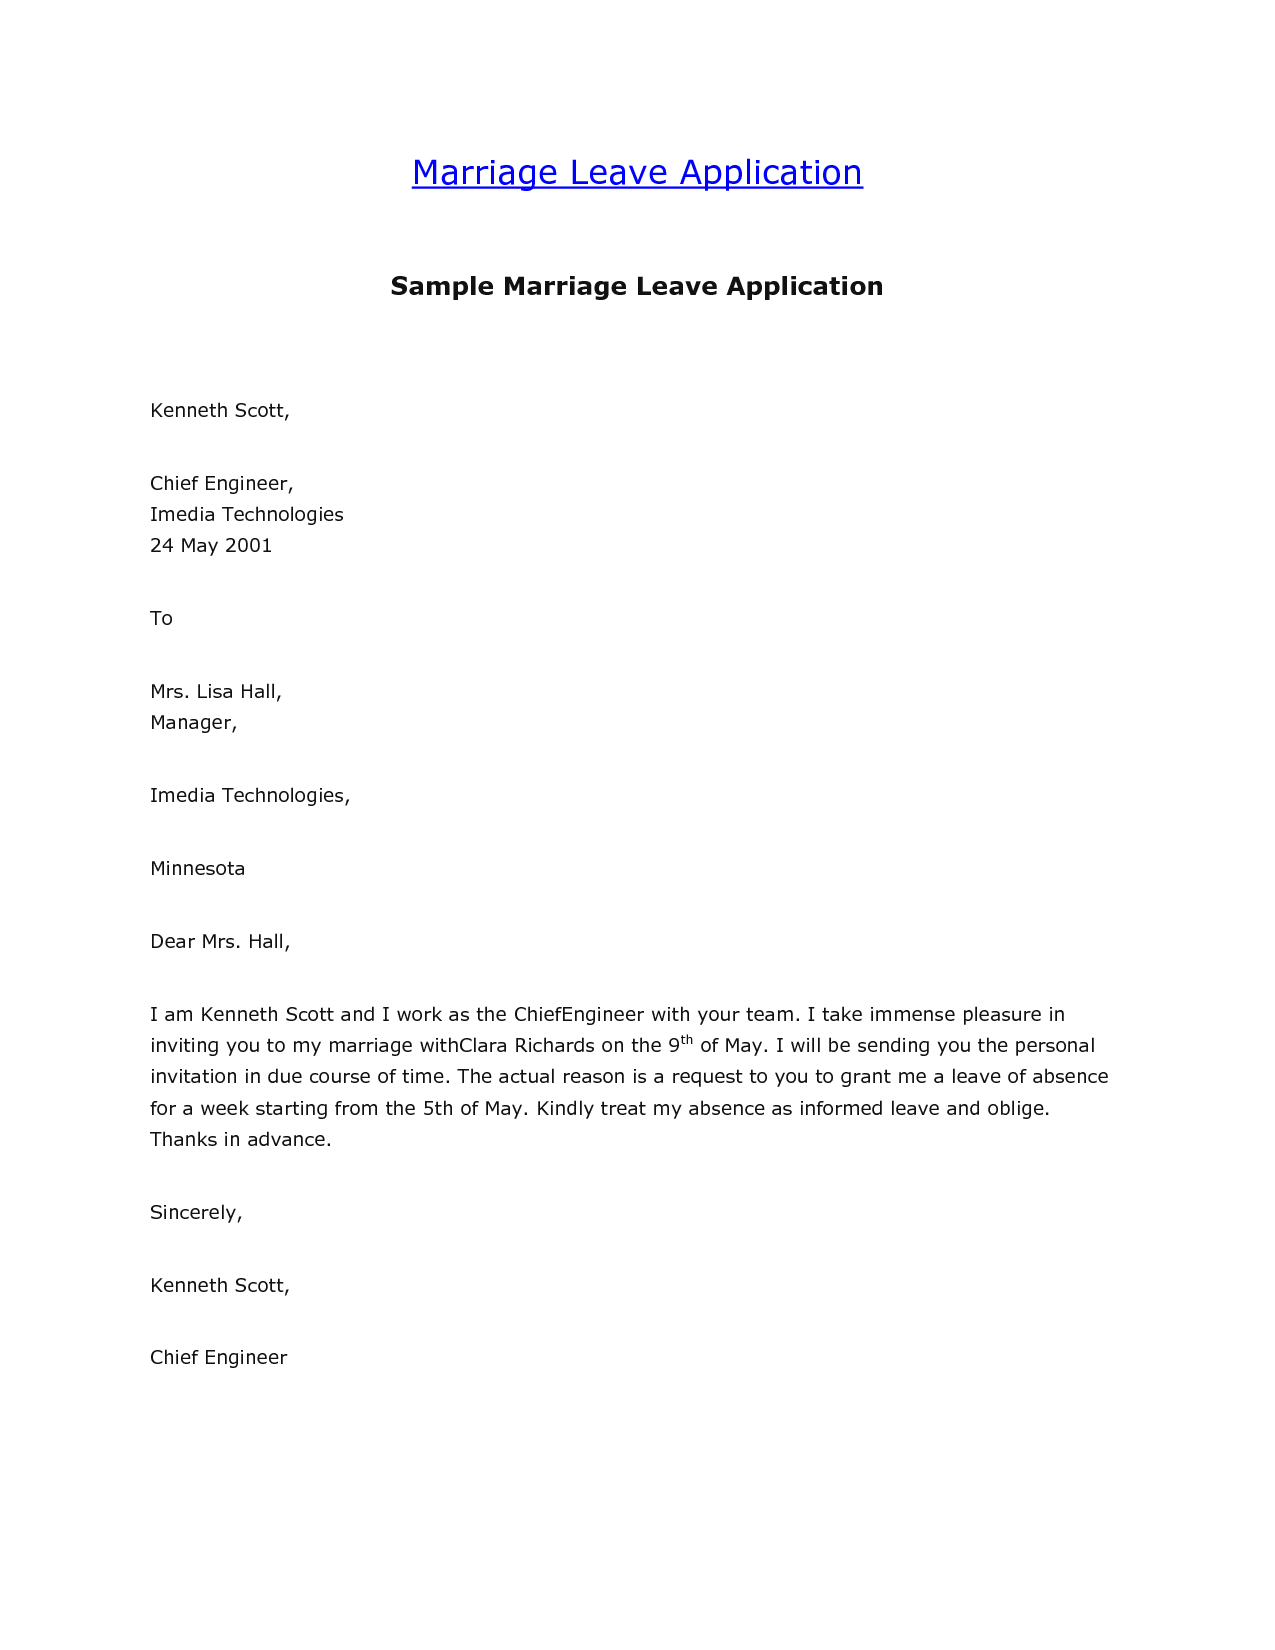 Marriage Leave Letter Format Best Template Collection